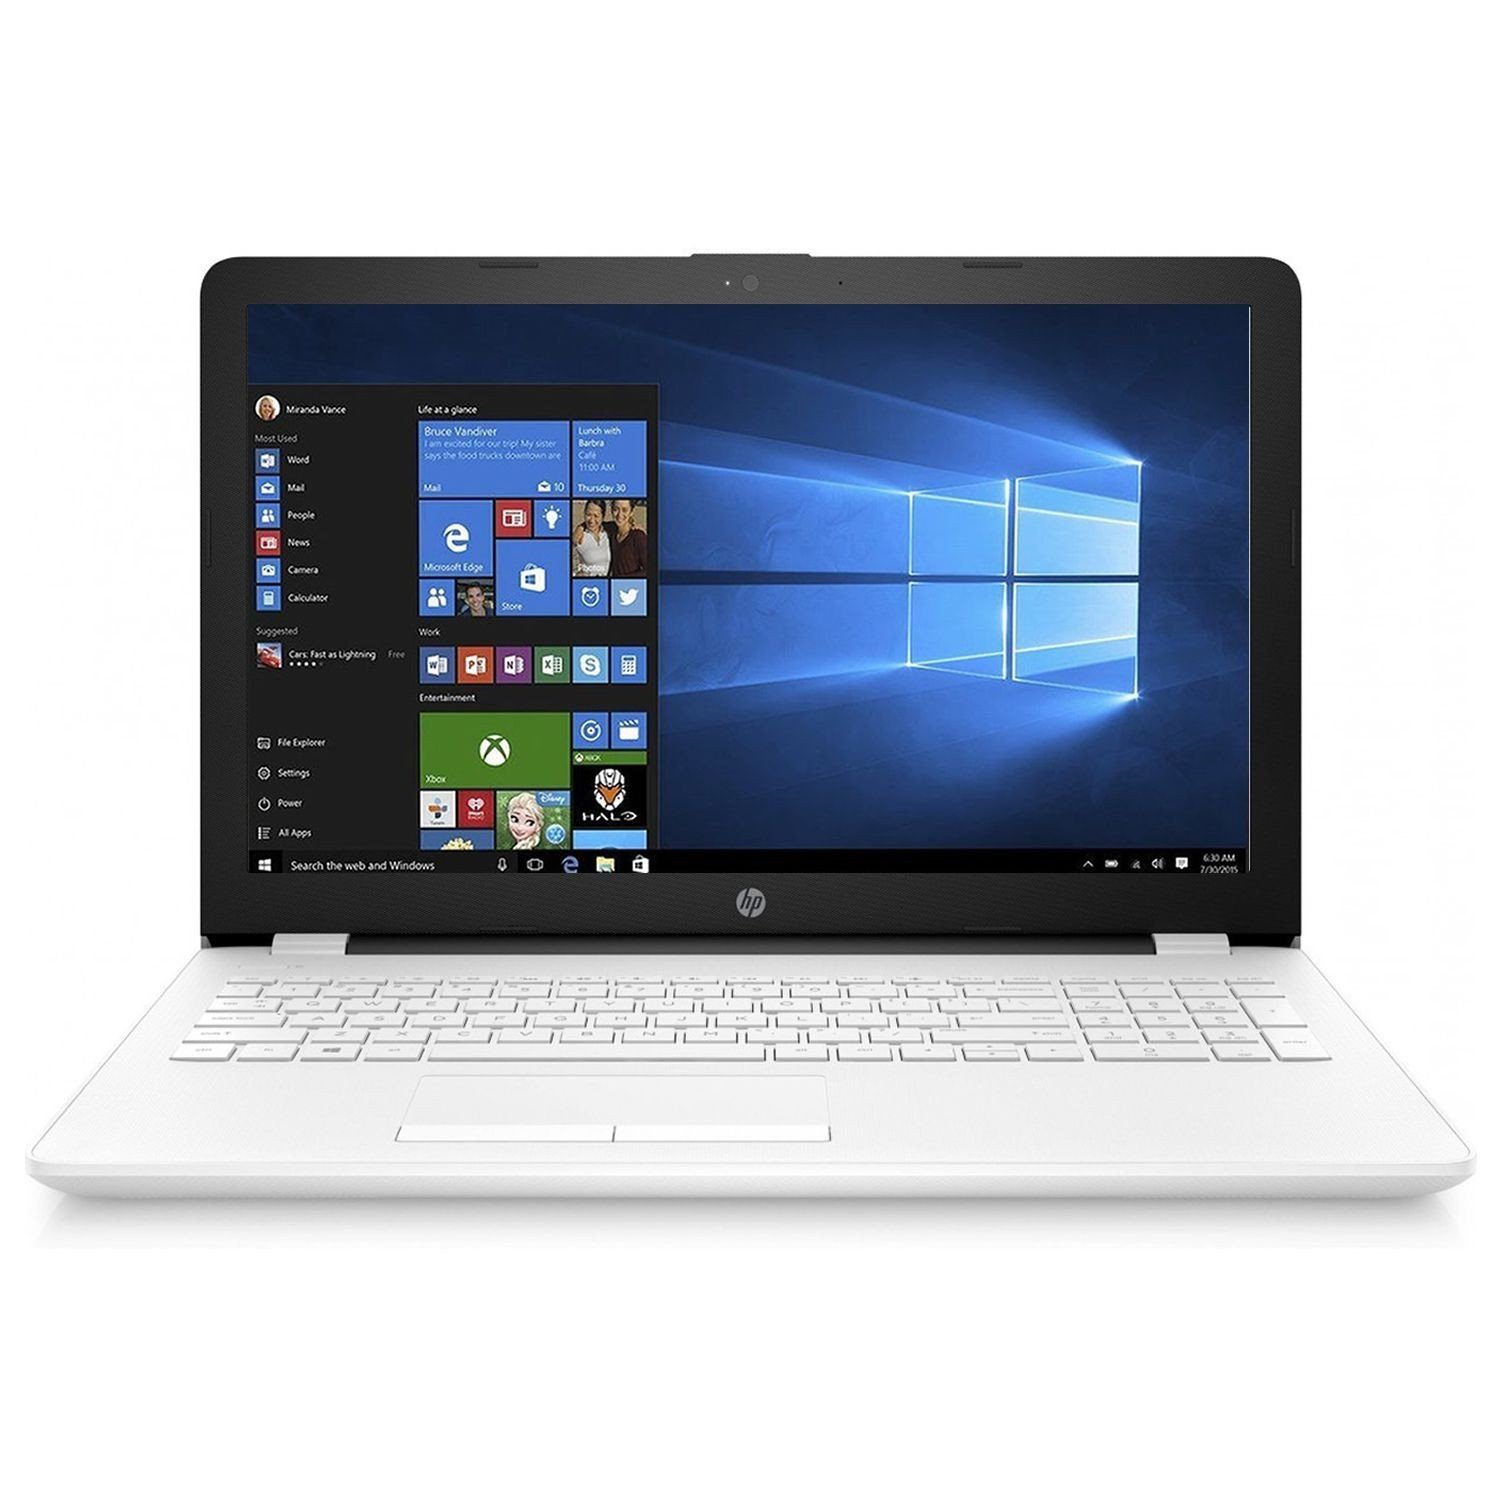 HP Notebook 15-BS006NS - Ordenador Portátil HD, Intel Core i3-6006U, 4 GB RAM, 500 GB HDD, Intel HD Graphcis , Windows 10, Negro, 15.6